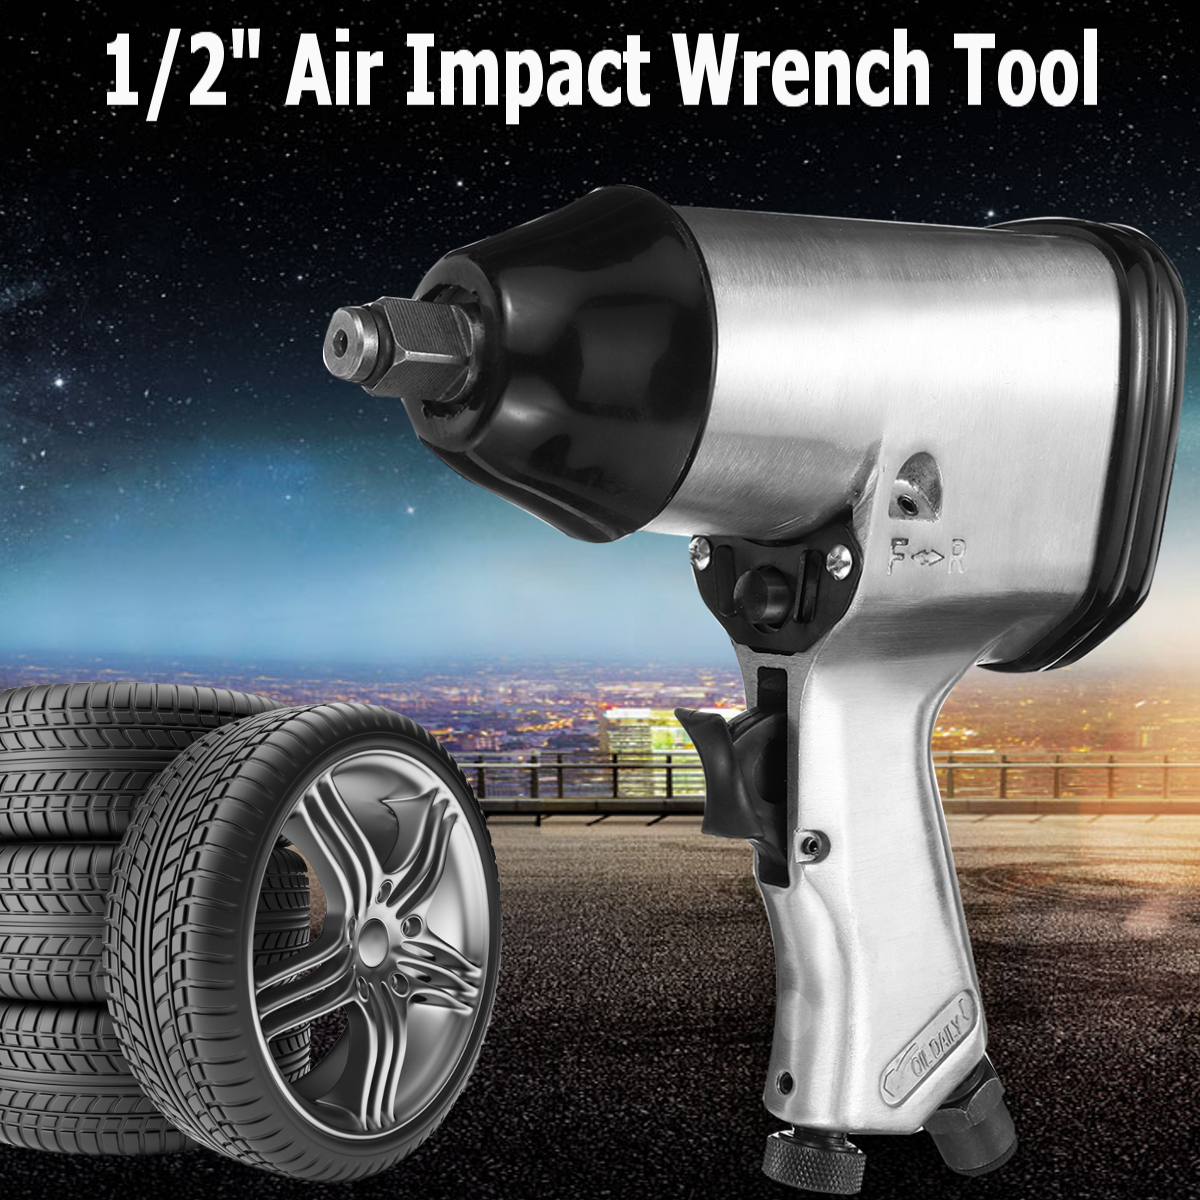 "Heavy 1/2""Air Impact Wrench Tool Drive Pneumatic For Car Wheel Repairing Die Cast Aluminum High Torque Low Noise 4CFM 90PSI"